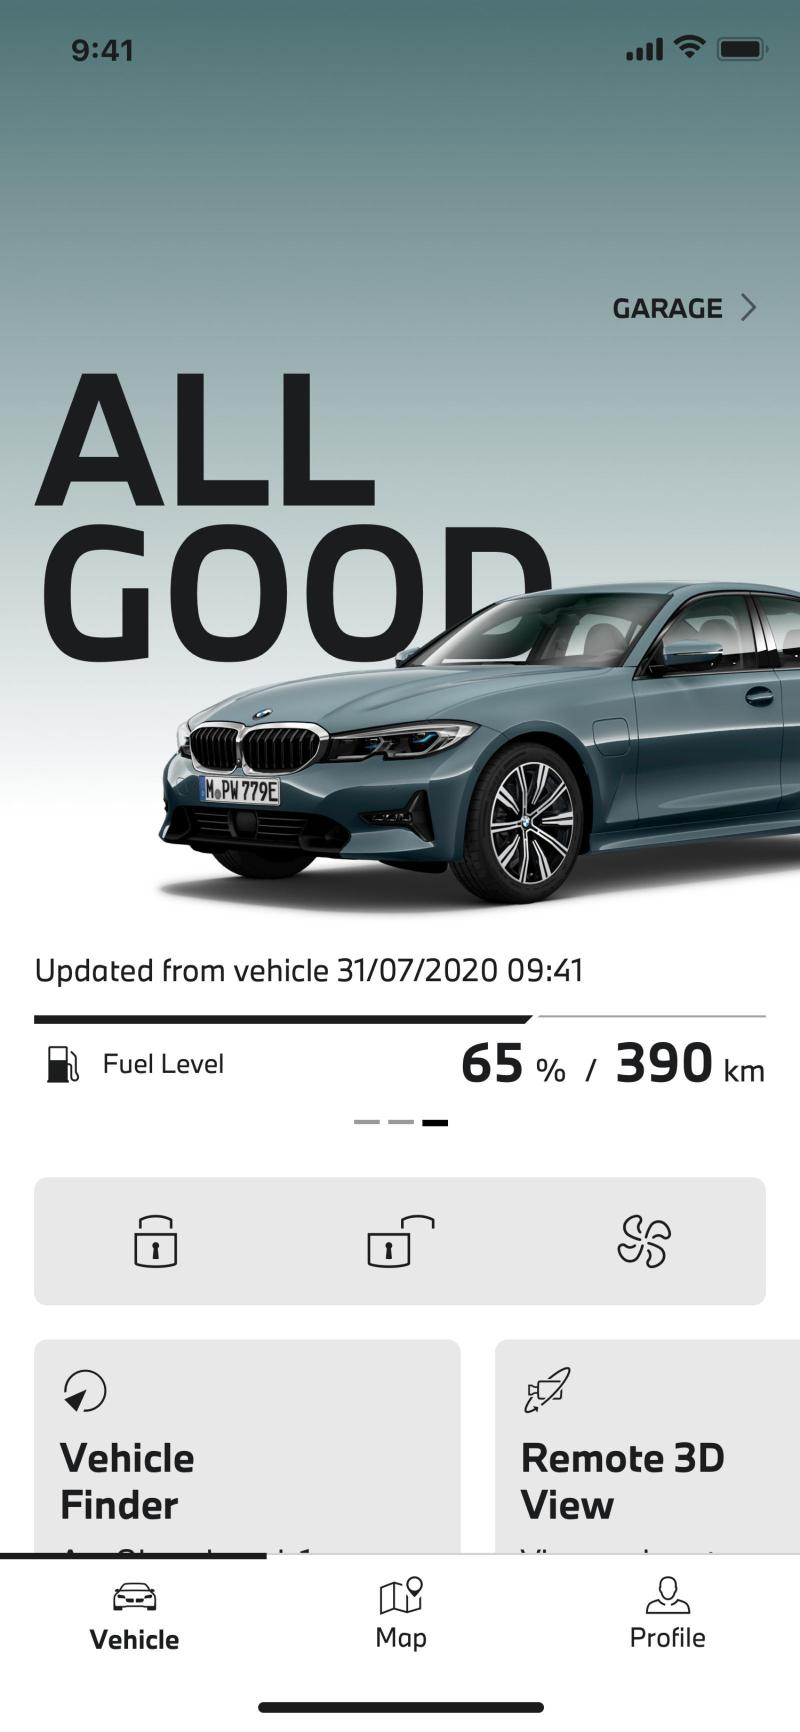 There's a new app to communicate with your BMW/MINI 02